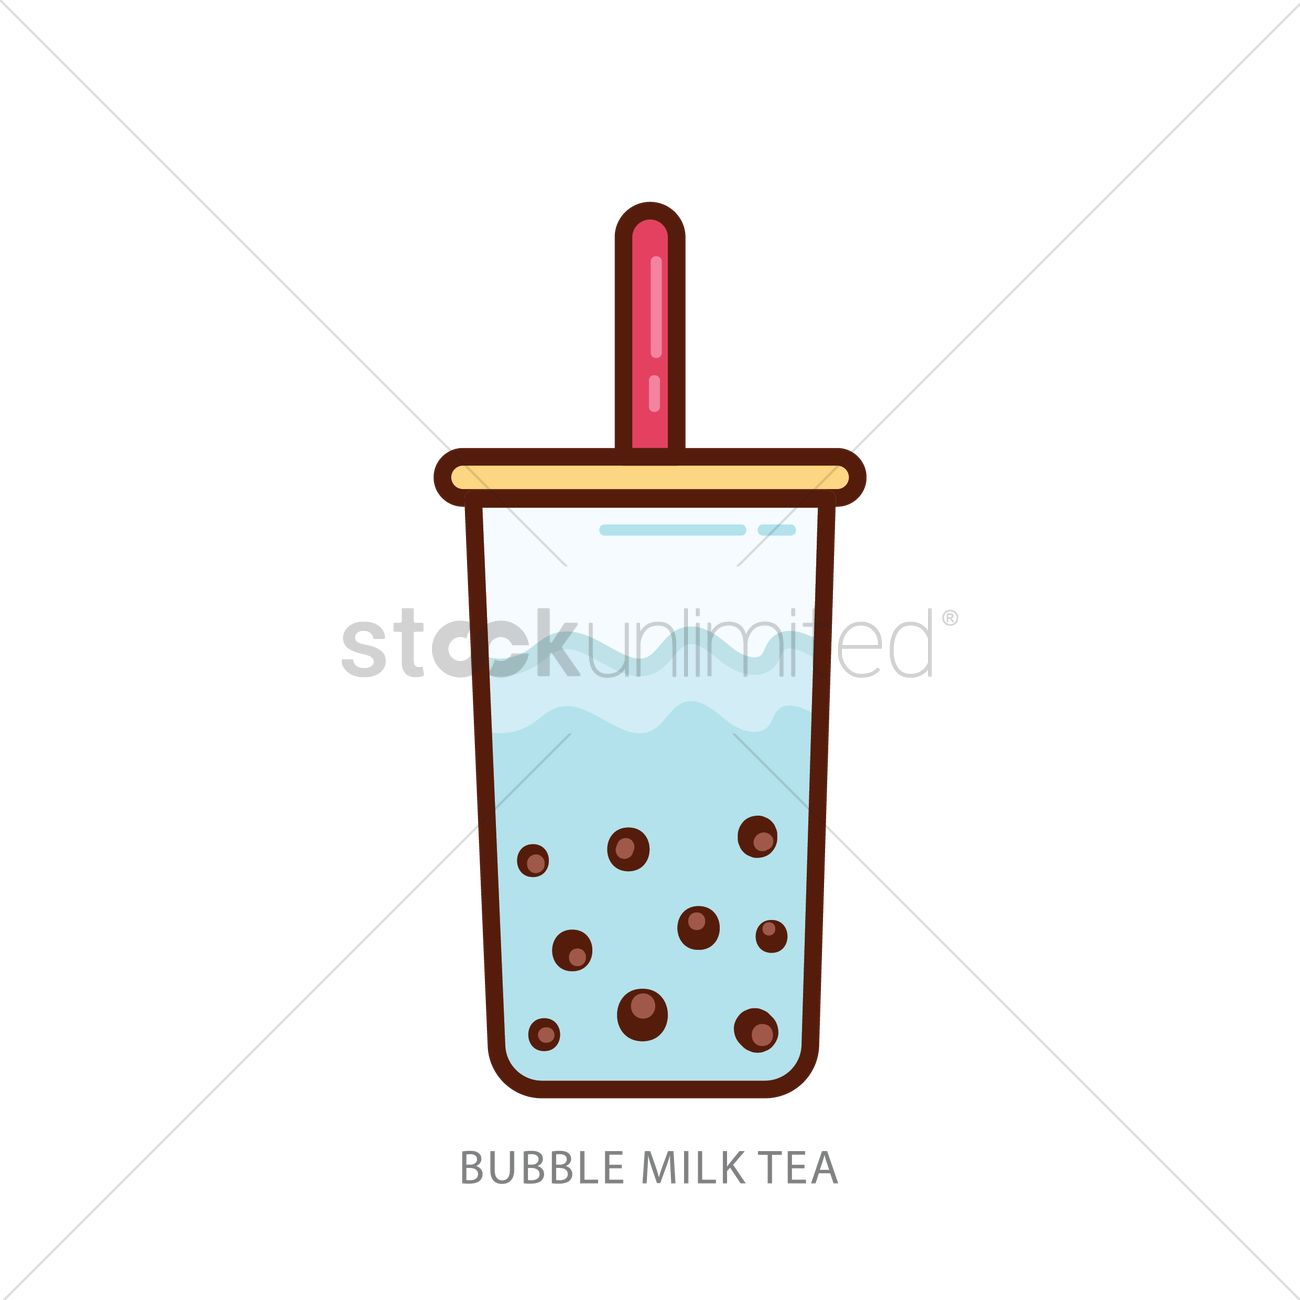 milk tea marketing We also took it further by analyzing and drafting a sample bubble tea shop  marketing plan template backed up by actionable guerrilla marketing ideas for  bubble.